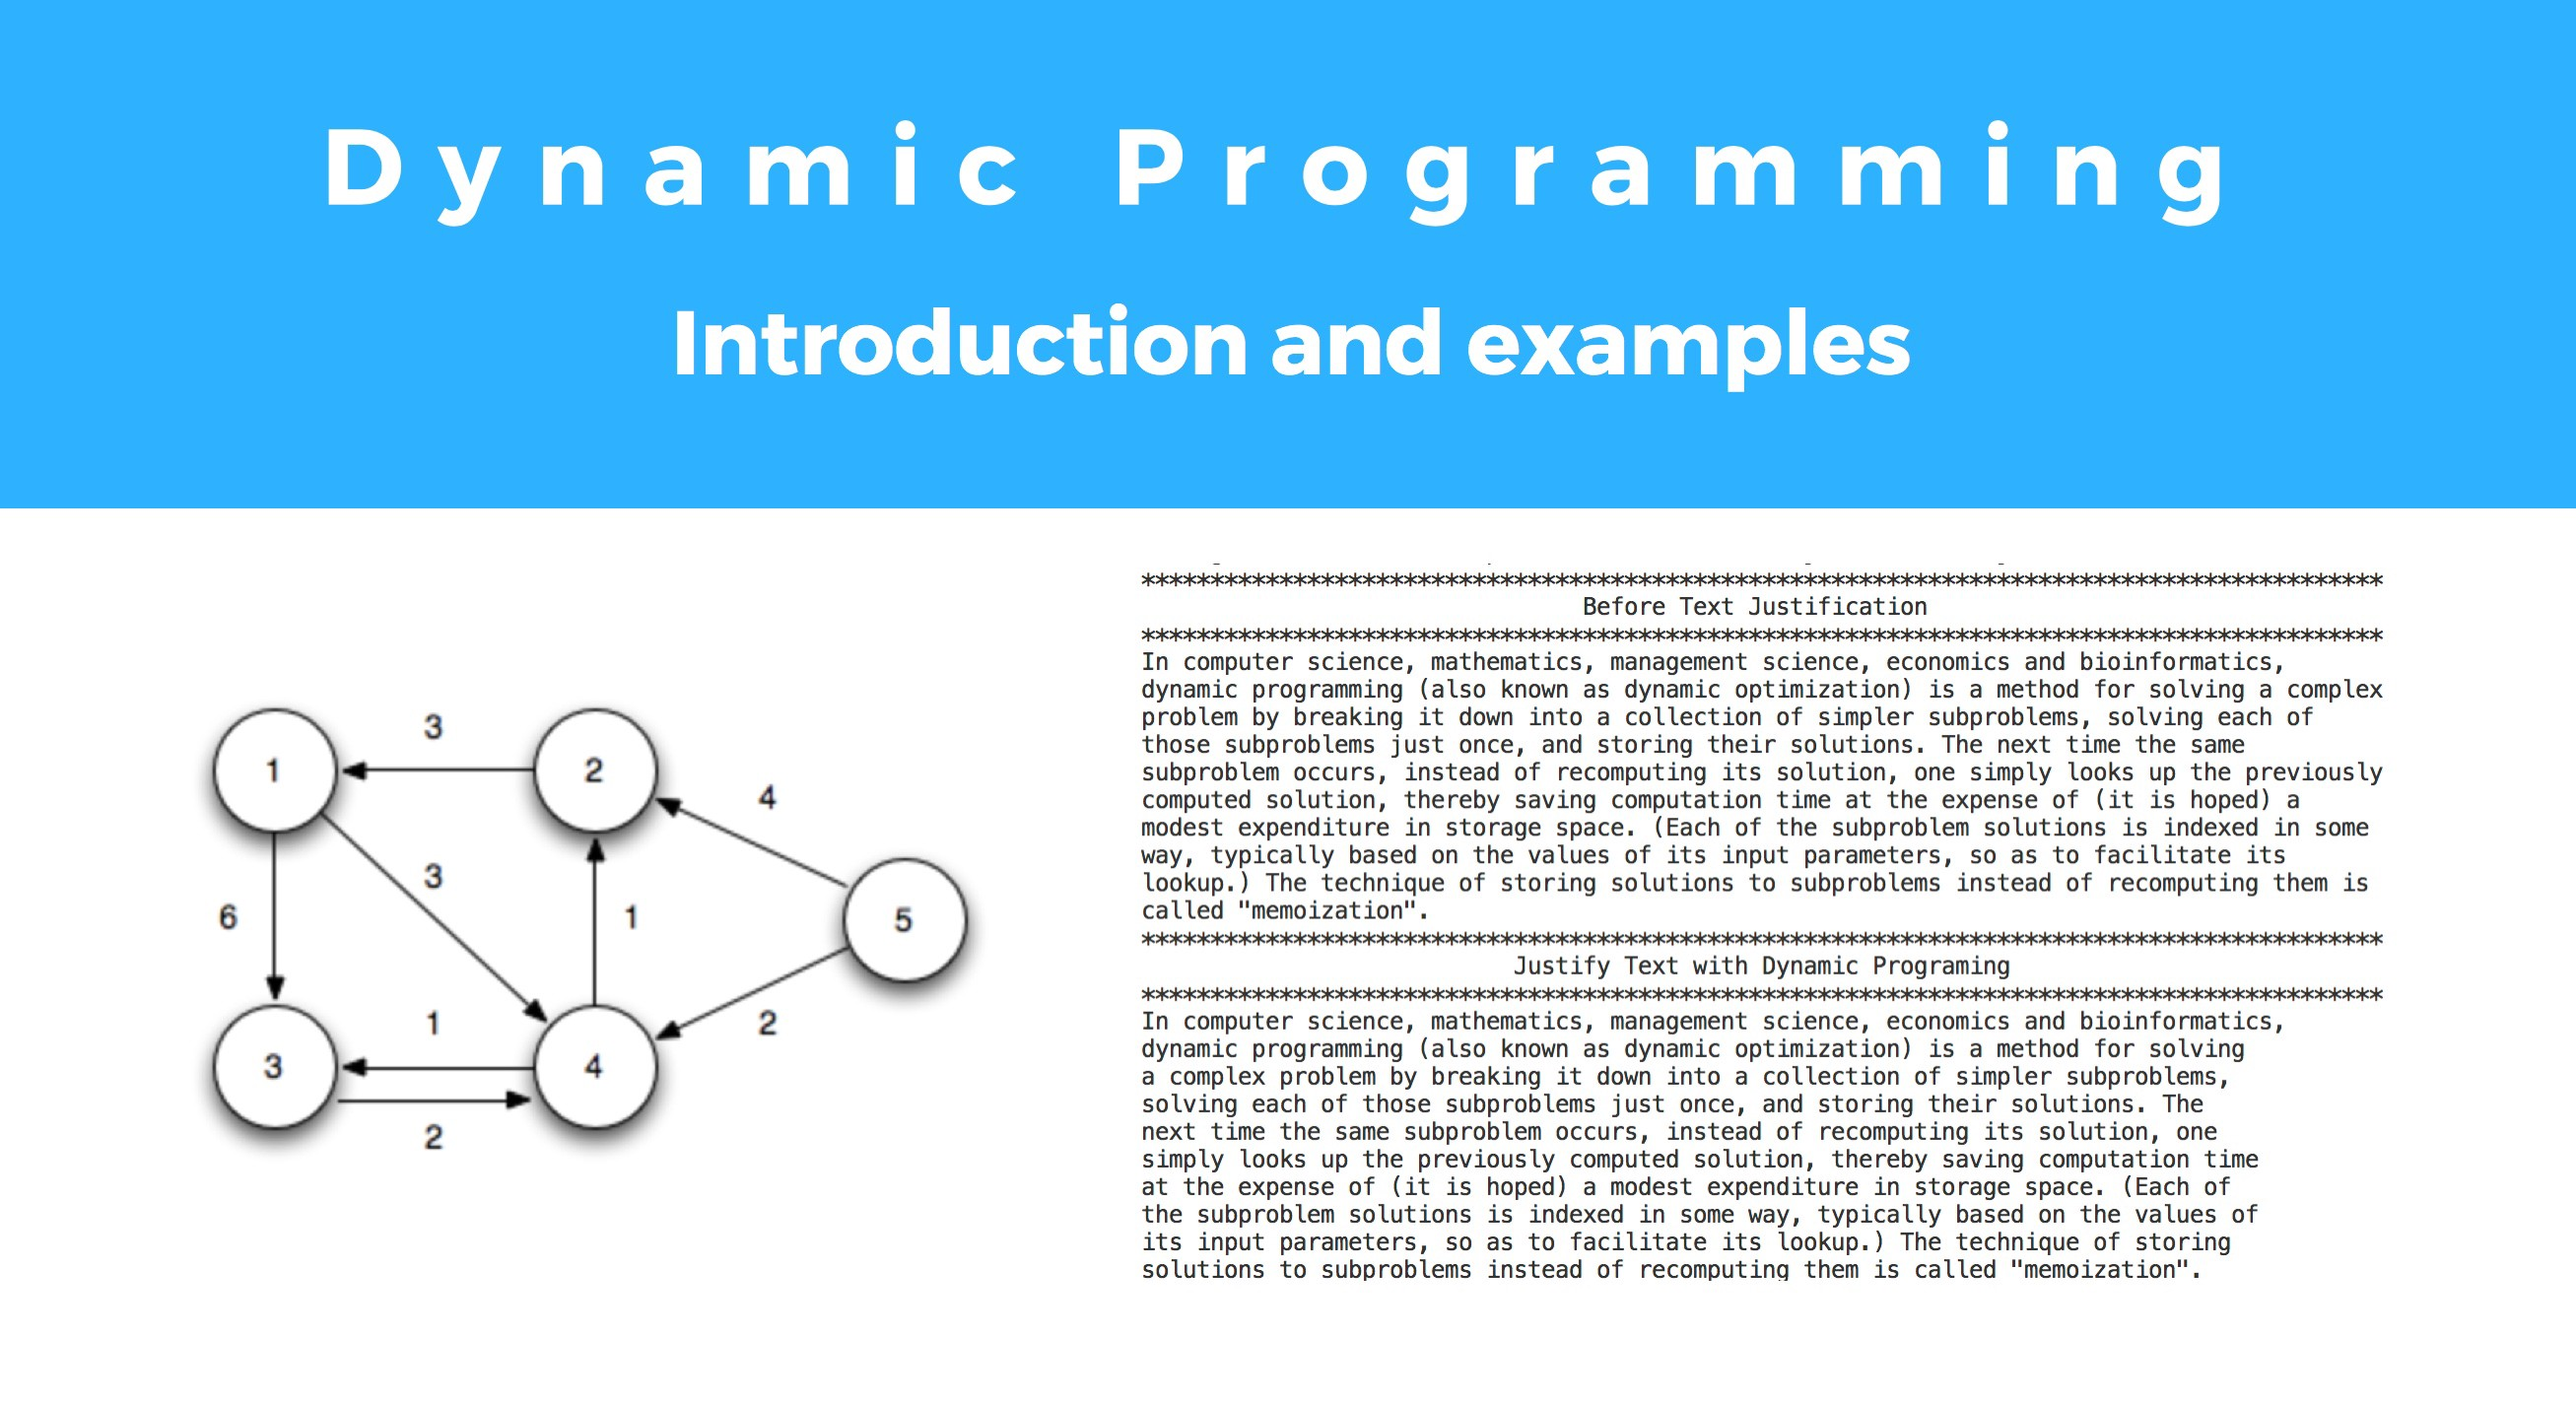 Introduction to Dynamic Programming with Examples - David